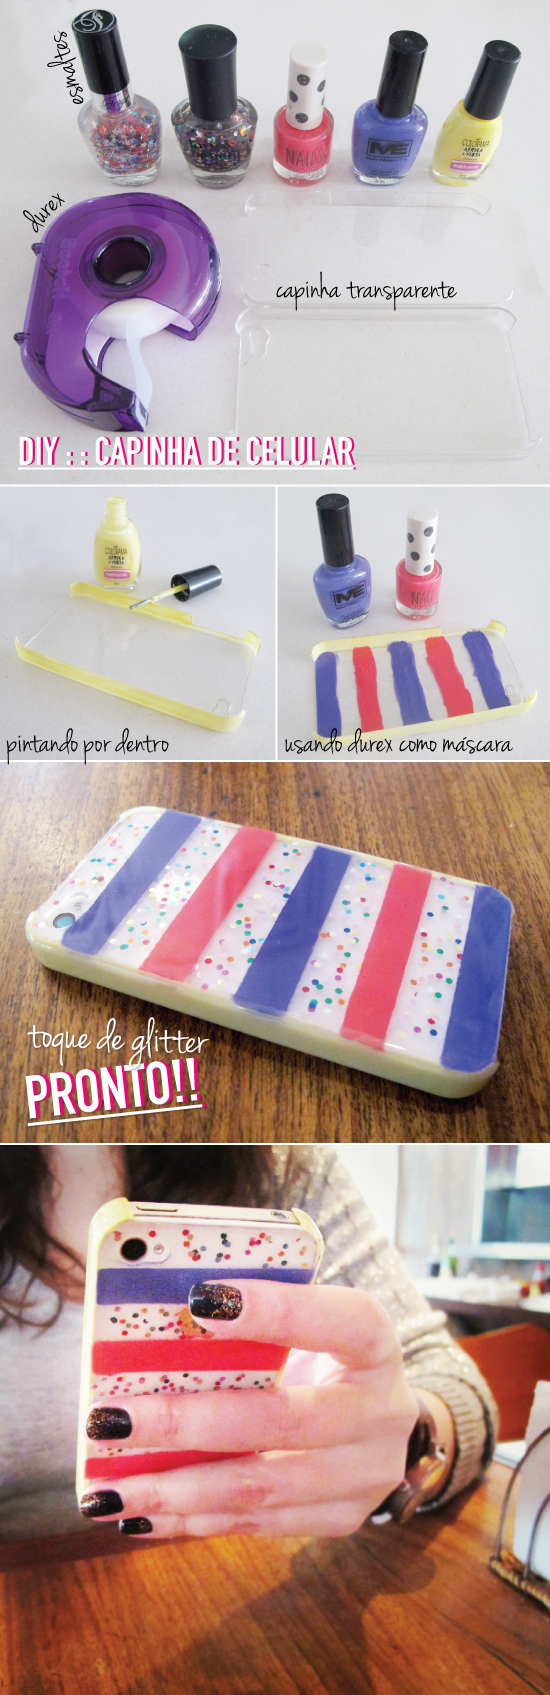 capinha-celular-iphone-esmalte-diy-tutorial-facil-pintar-transparente-cover-case-nail-polish-customizacao-customizar-ideia